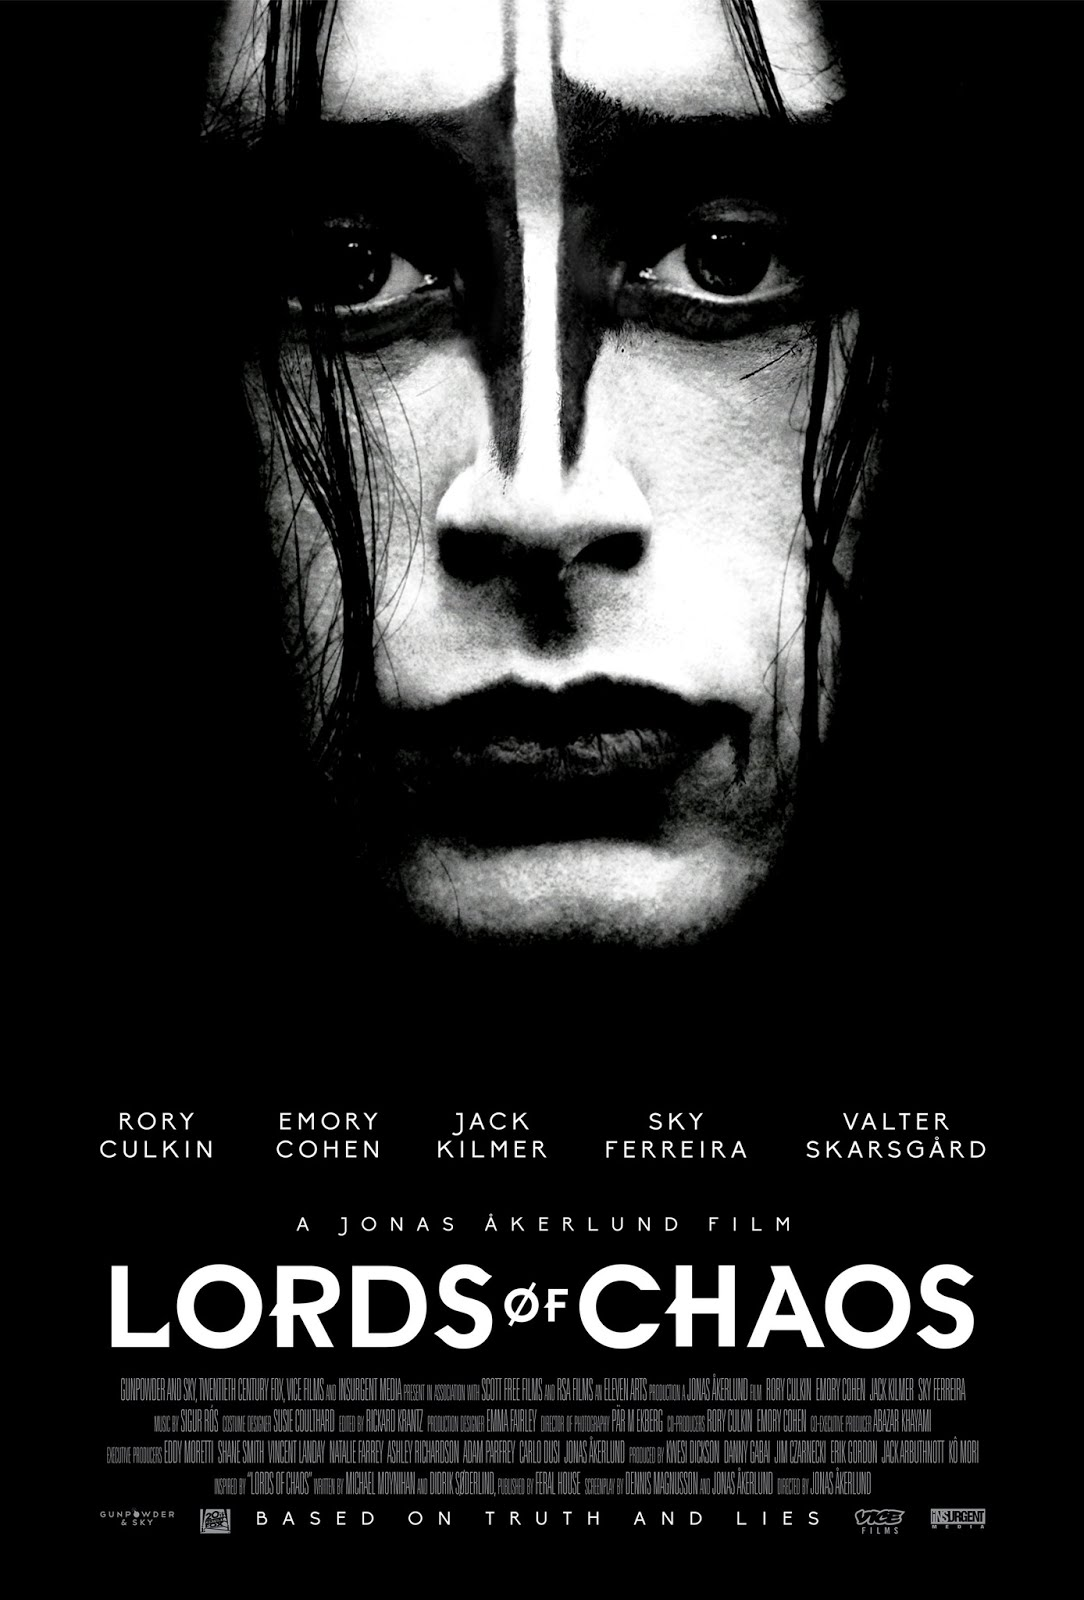 Lords Of Chaos movie streaming. PunkMetalRap.com